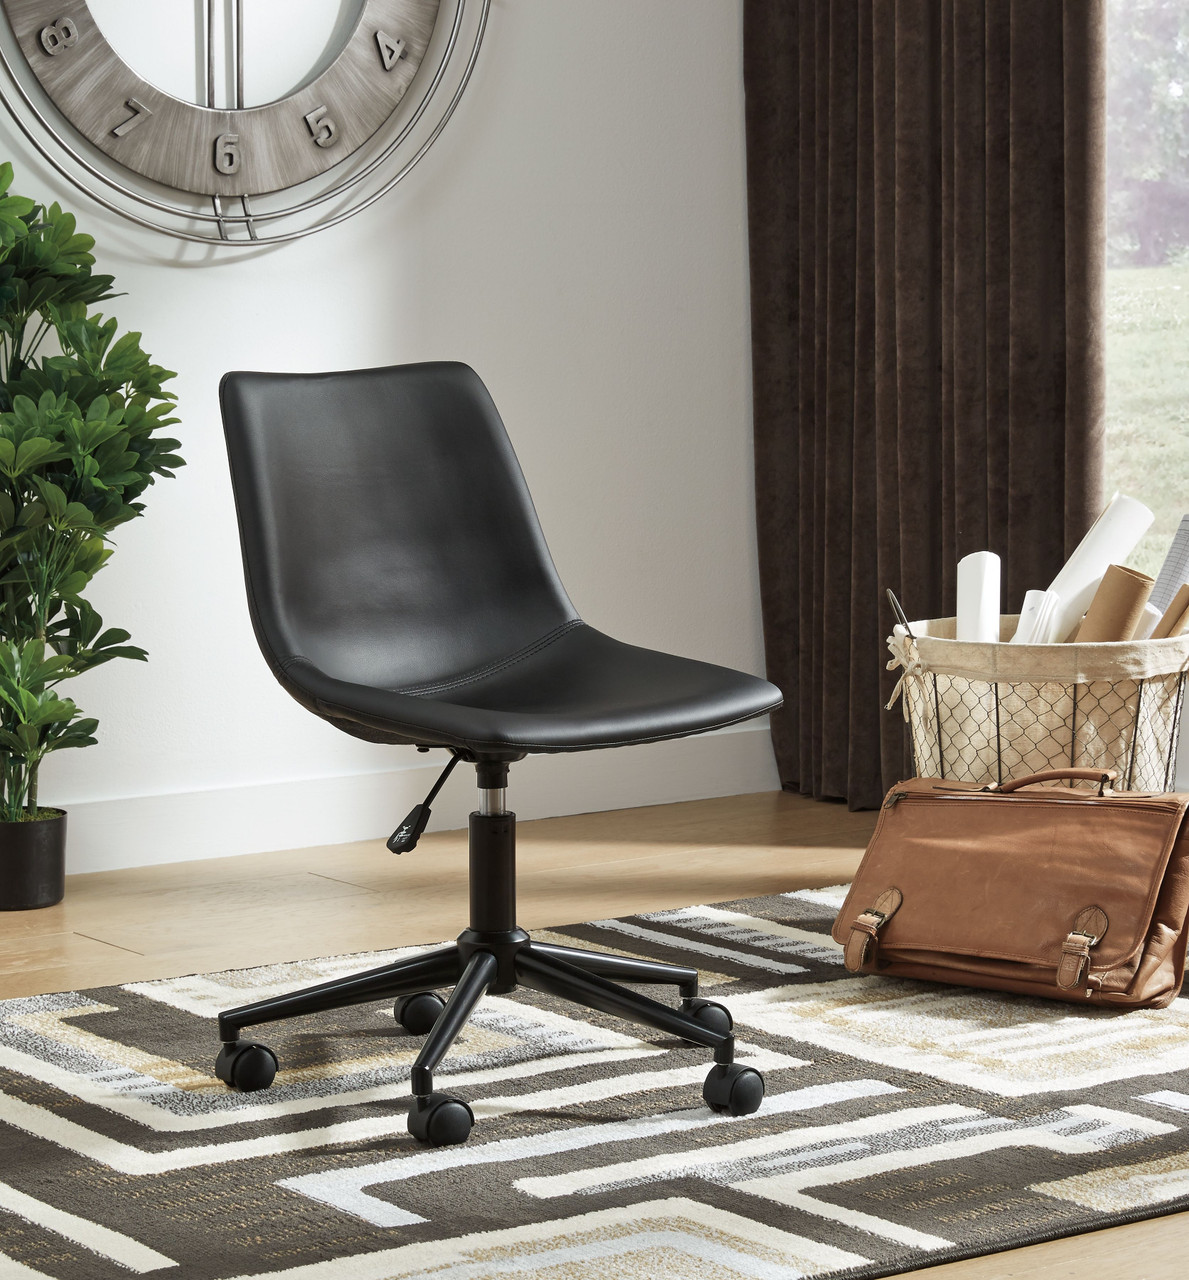 Office Chair Program Black Home Office Swivel Desk Chair Available At Jacob Nathan Home Furnishings Accessories Serving Kingston On